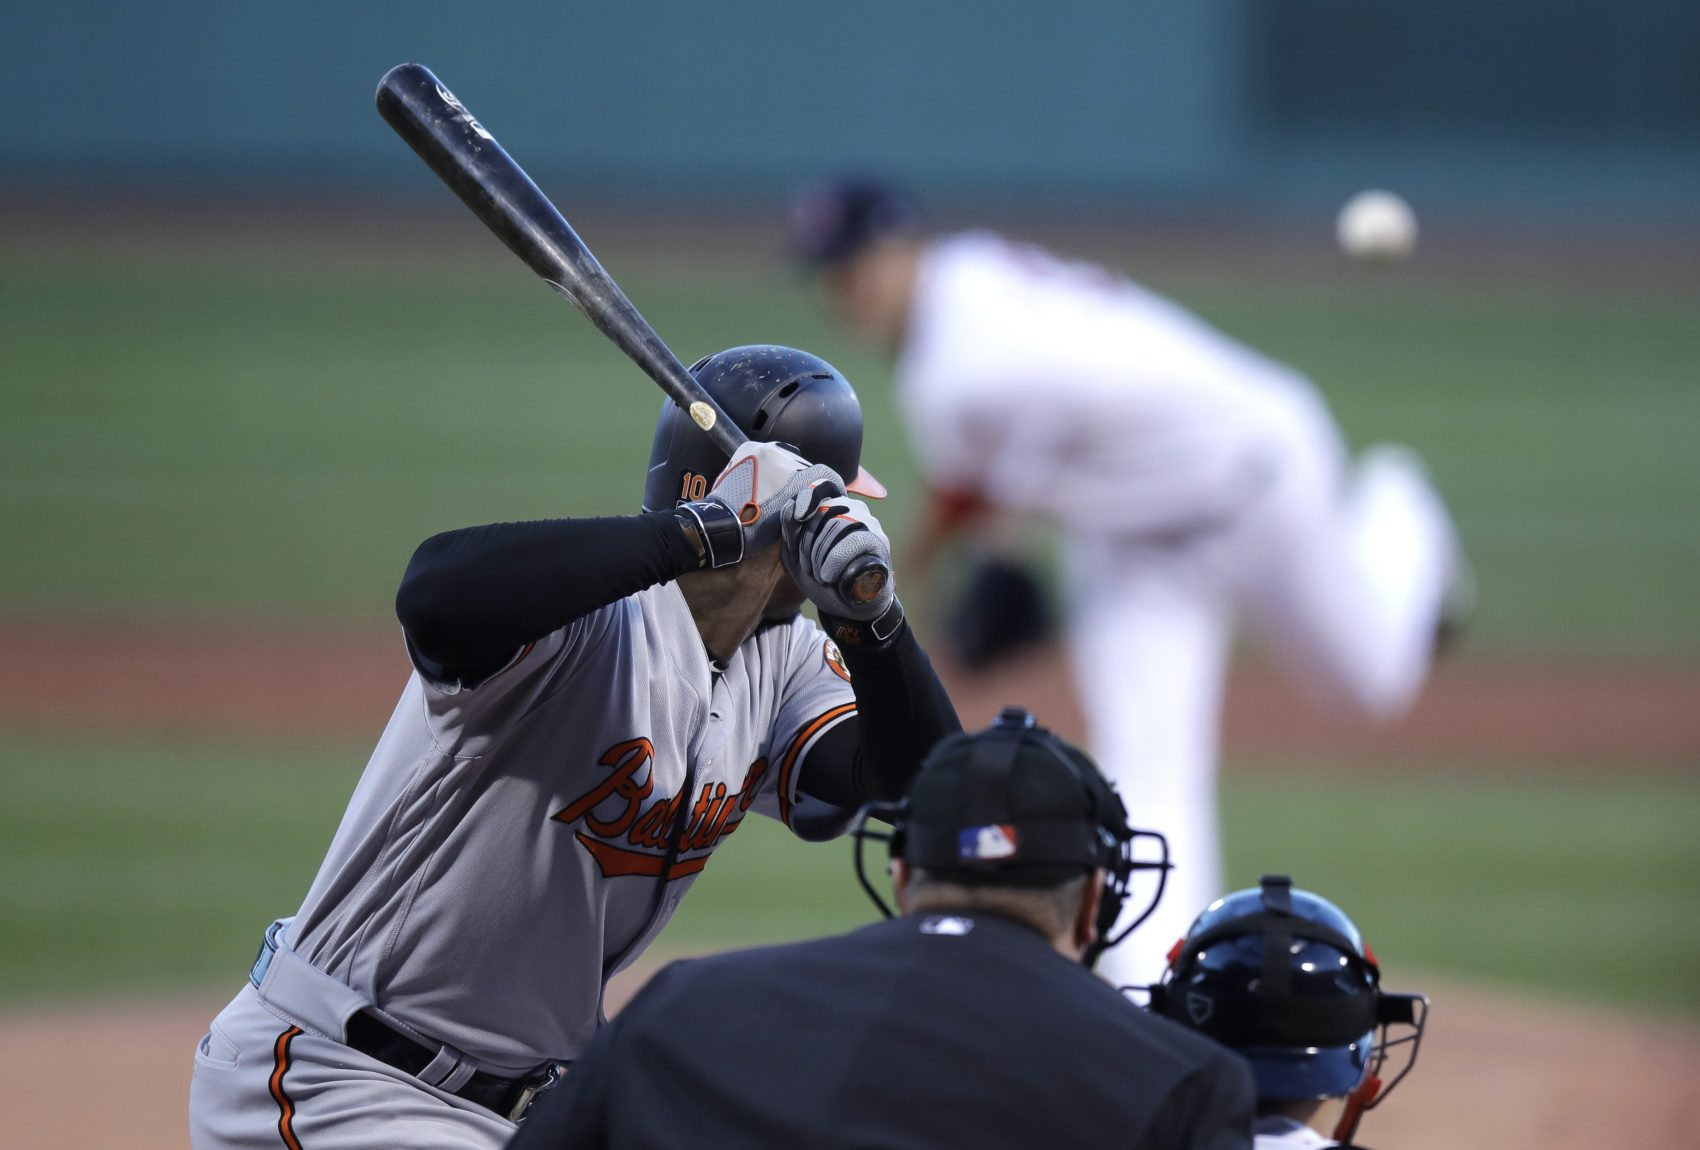 Clinton blamed Comey, Comey got nauseous, Red Sox fans got angry, and Trump fudged U.S. history. All that and more from Tom Keane's roundup of the week in the news. Pictured: Baltimore Orioles' Adam Jones during a game at Fenway Park in Boston, Wednesday, May 3, 2017. (Charles Krupa/AP)